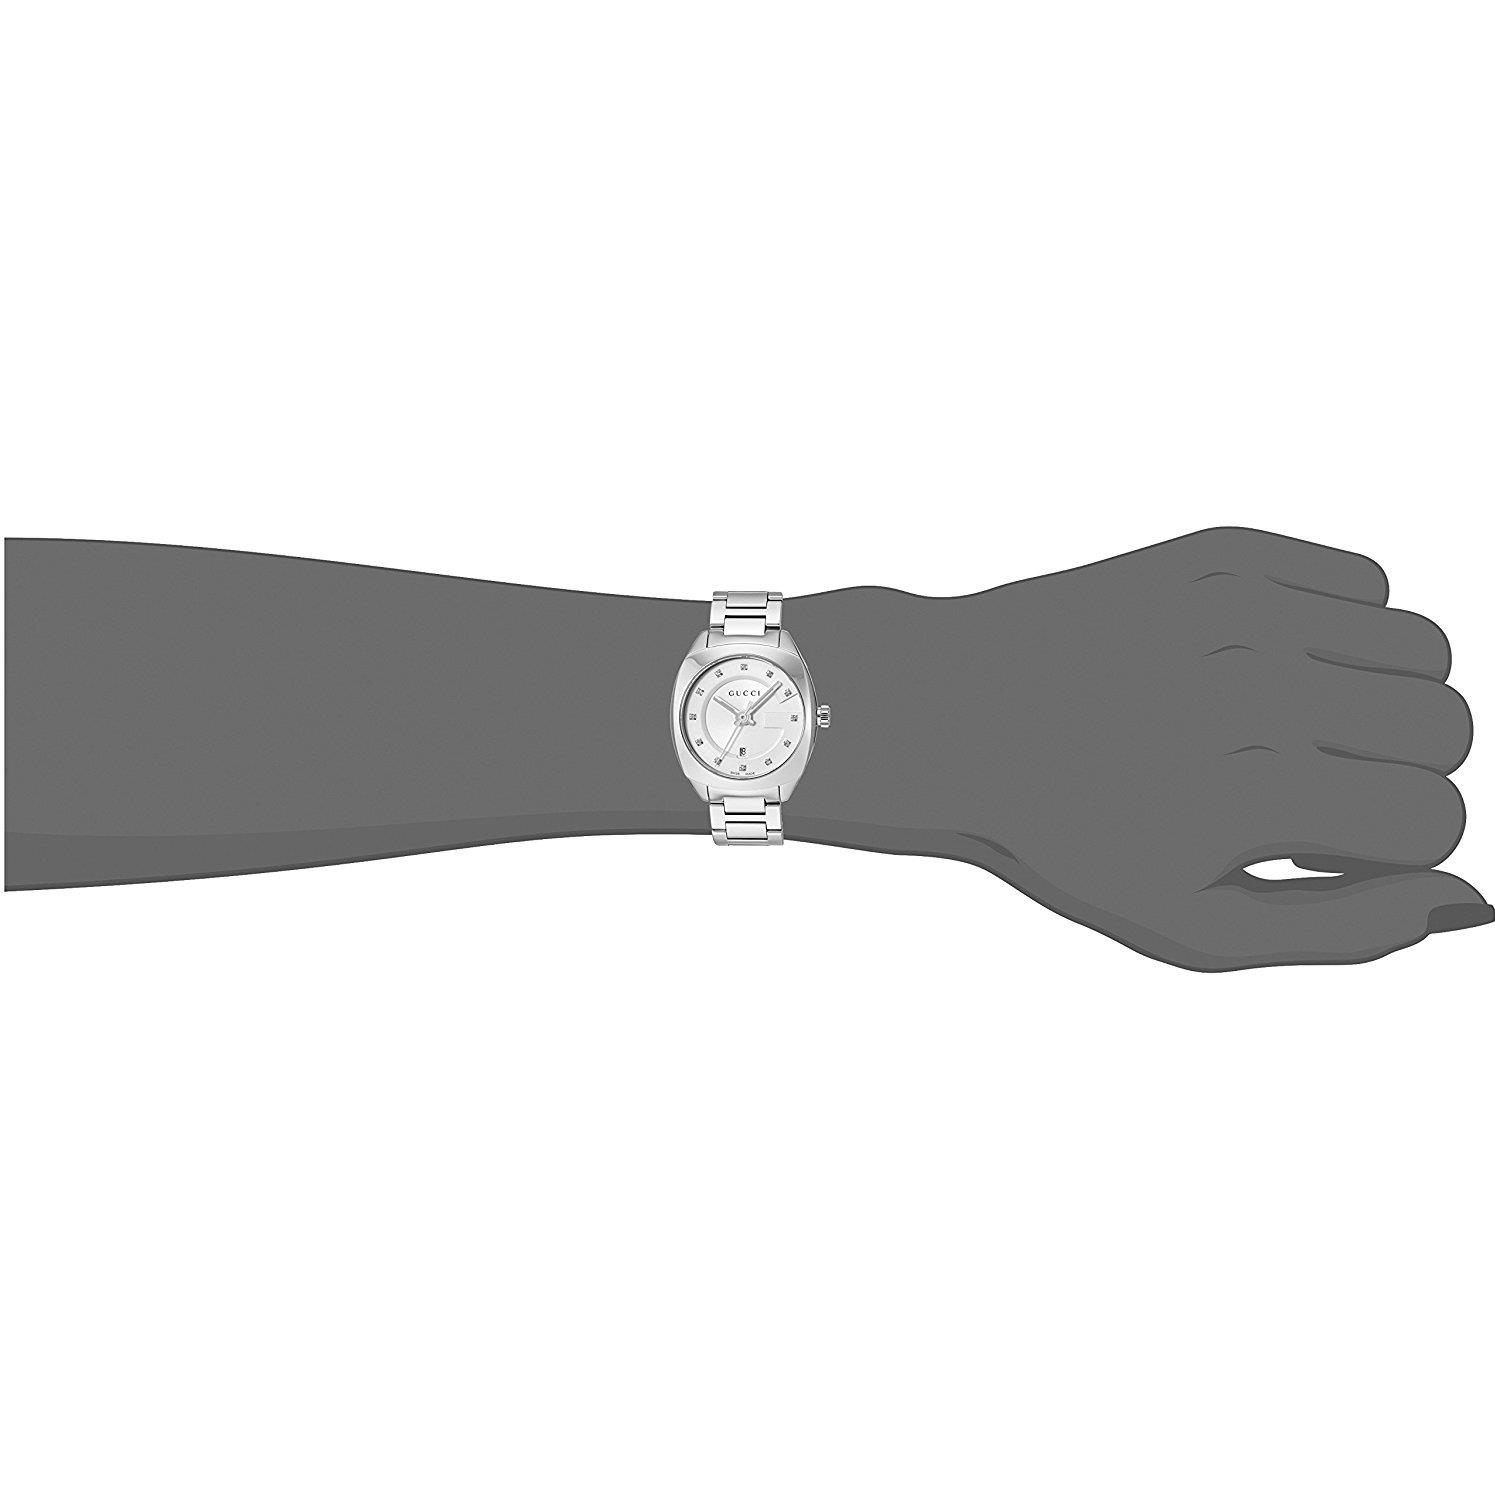 3bdd364519f Gucci - Gucci GG2570 White Dial Stainless Steel Diamond Ladies Watch  YA142504 - Walmart.com